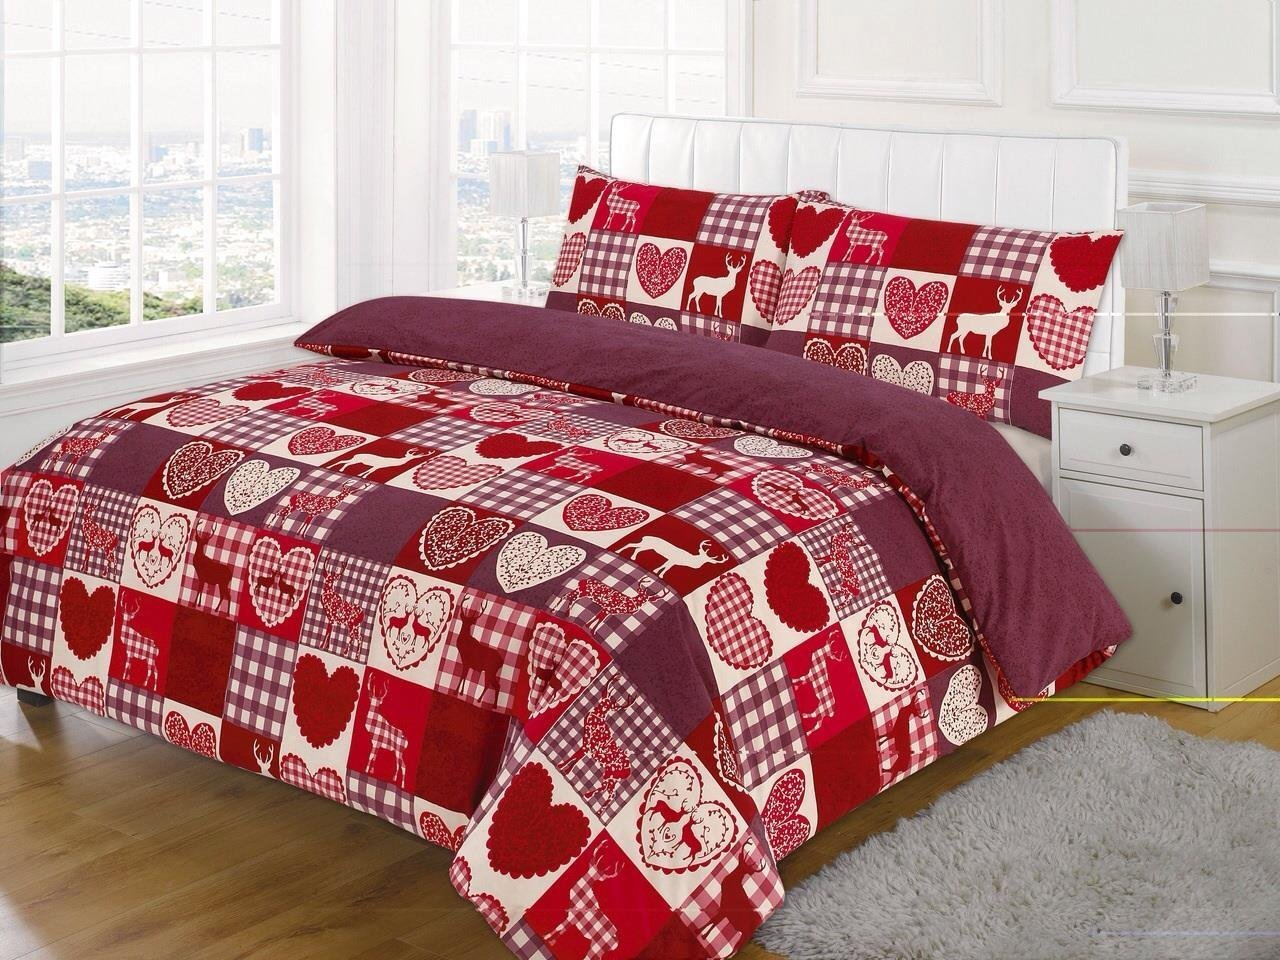 sizes bedding cover black your in space or and available my set king double red super sets duvet